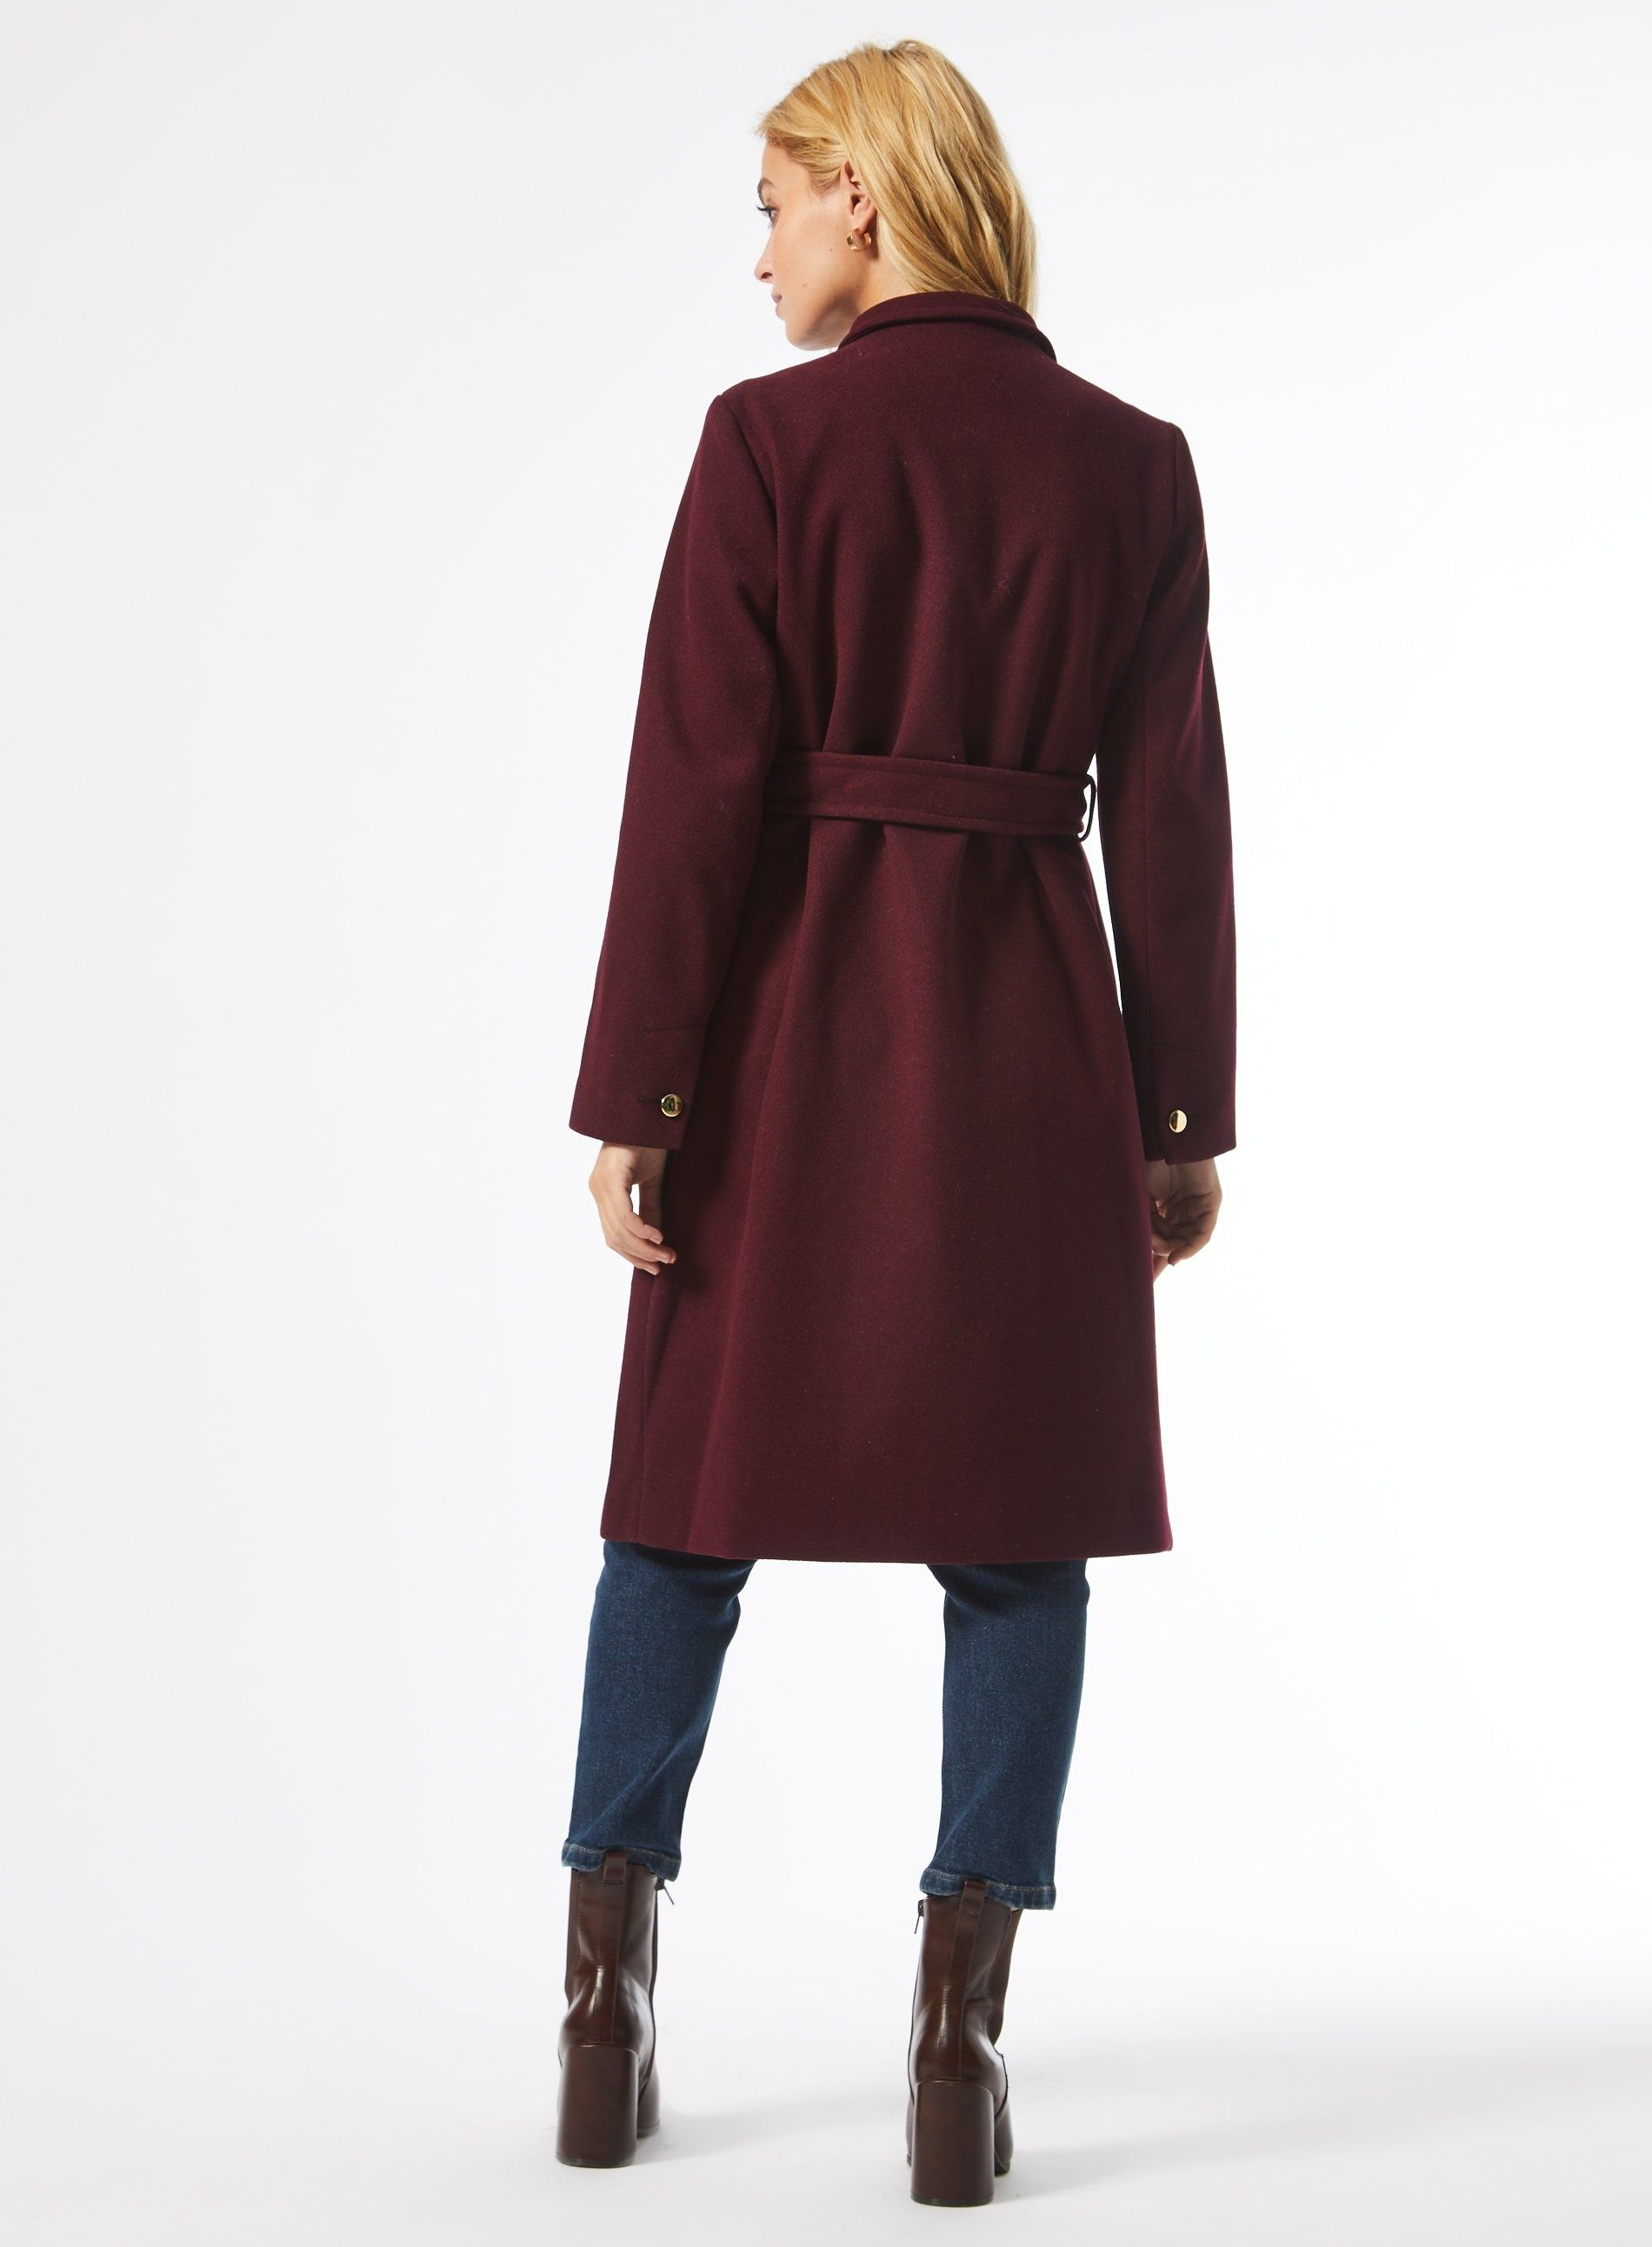 Dorothy Perkins Womens Petite Berry Red Port Belted Coat Jacket Outwear Top